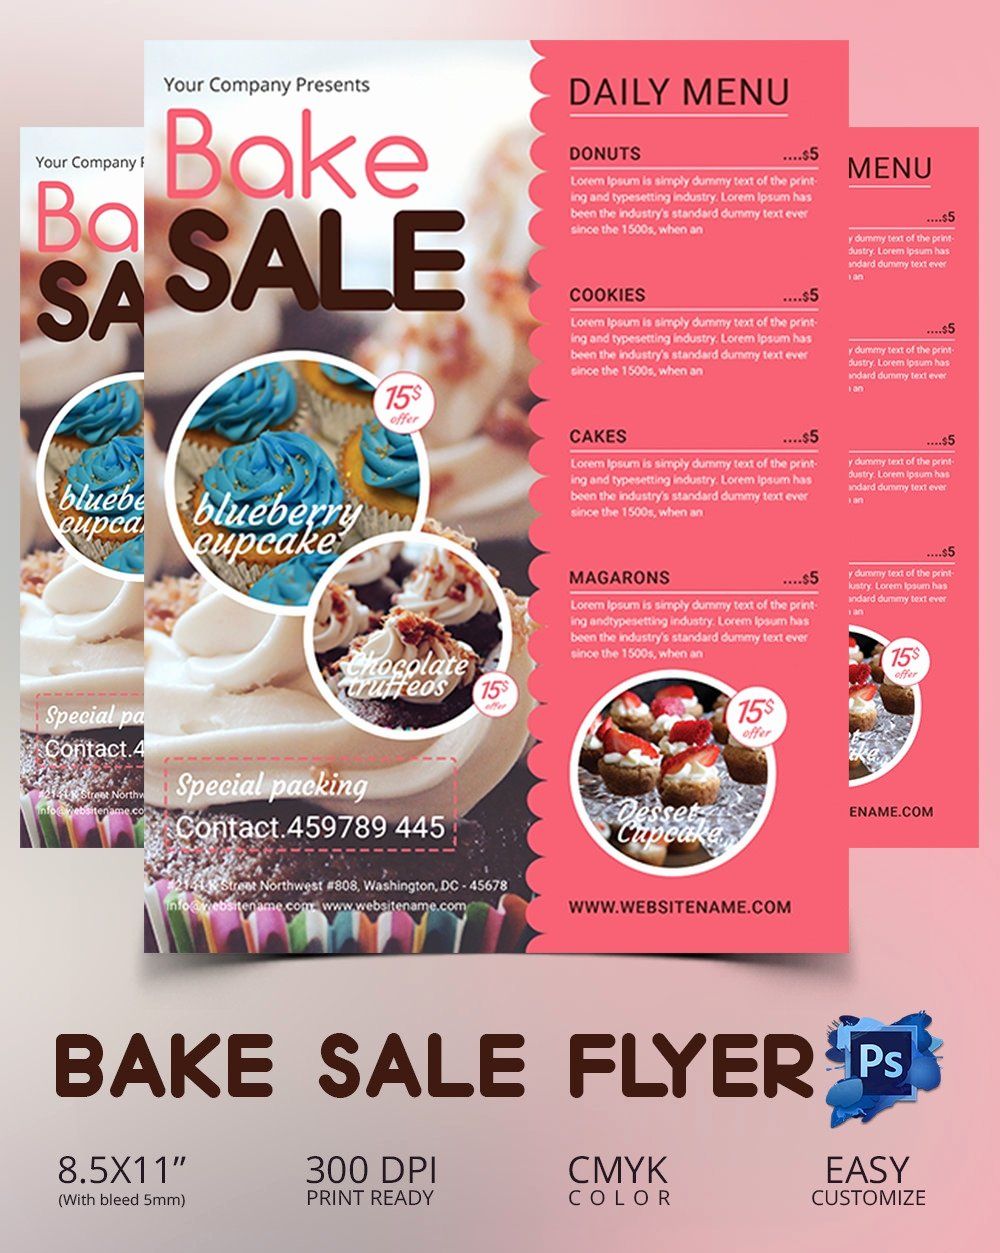 Bake Sale Flyer Template Unique Bake Sale Flyer Template 34 Free Psd Indesign Ai